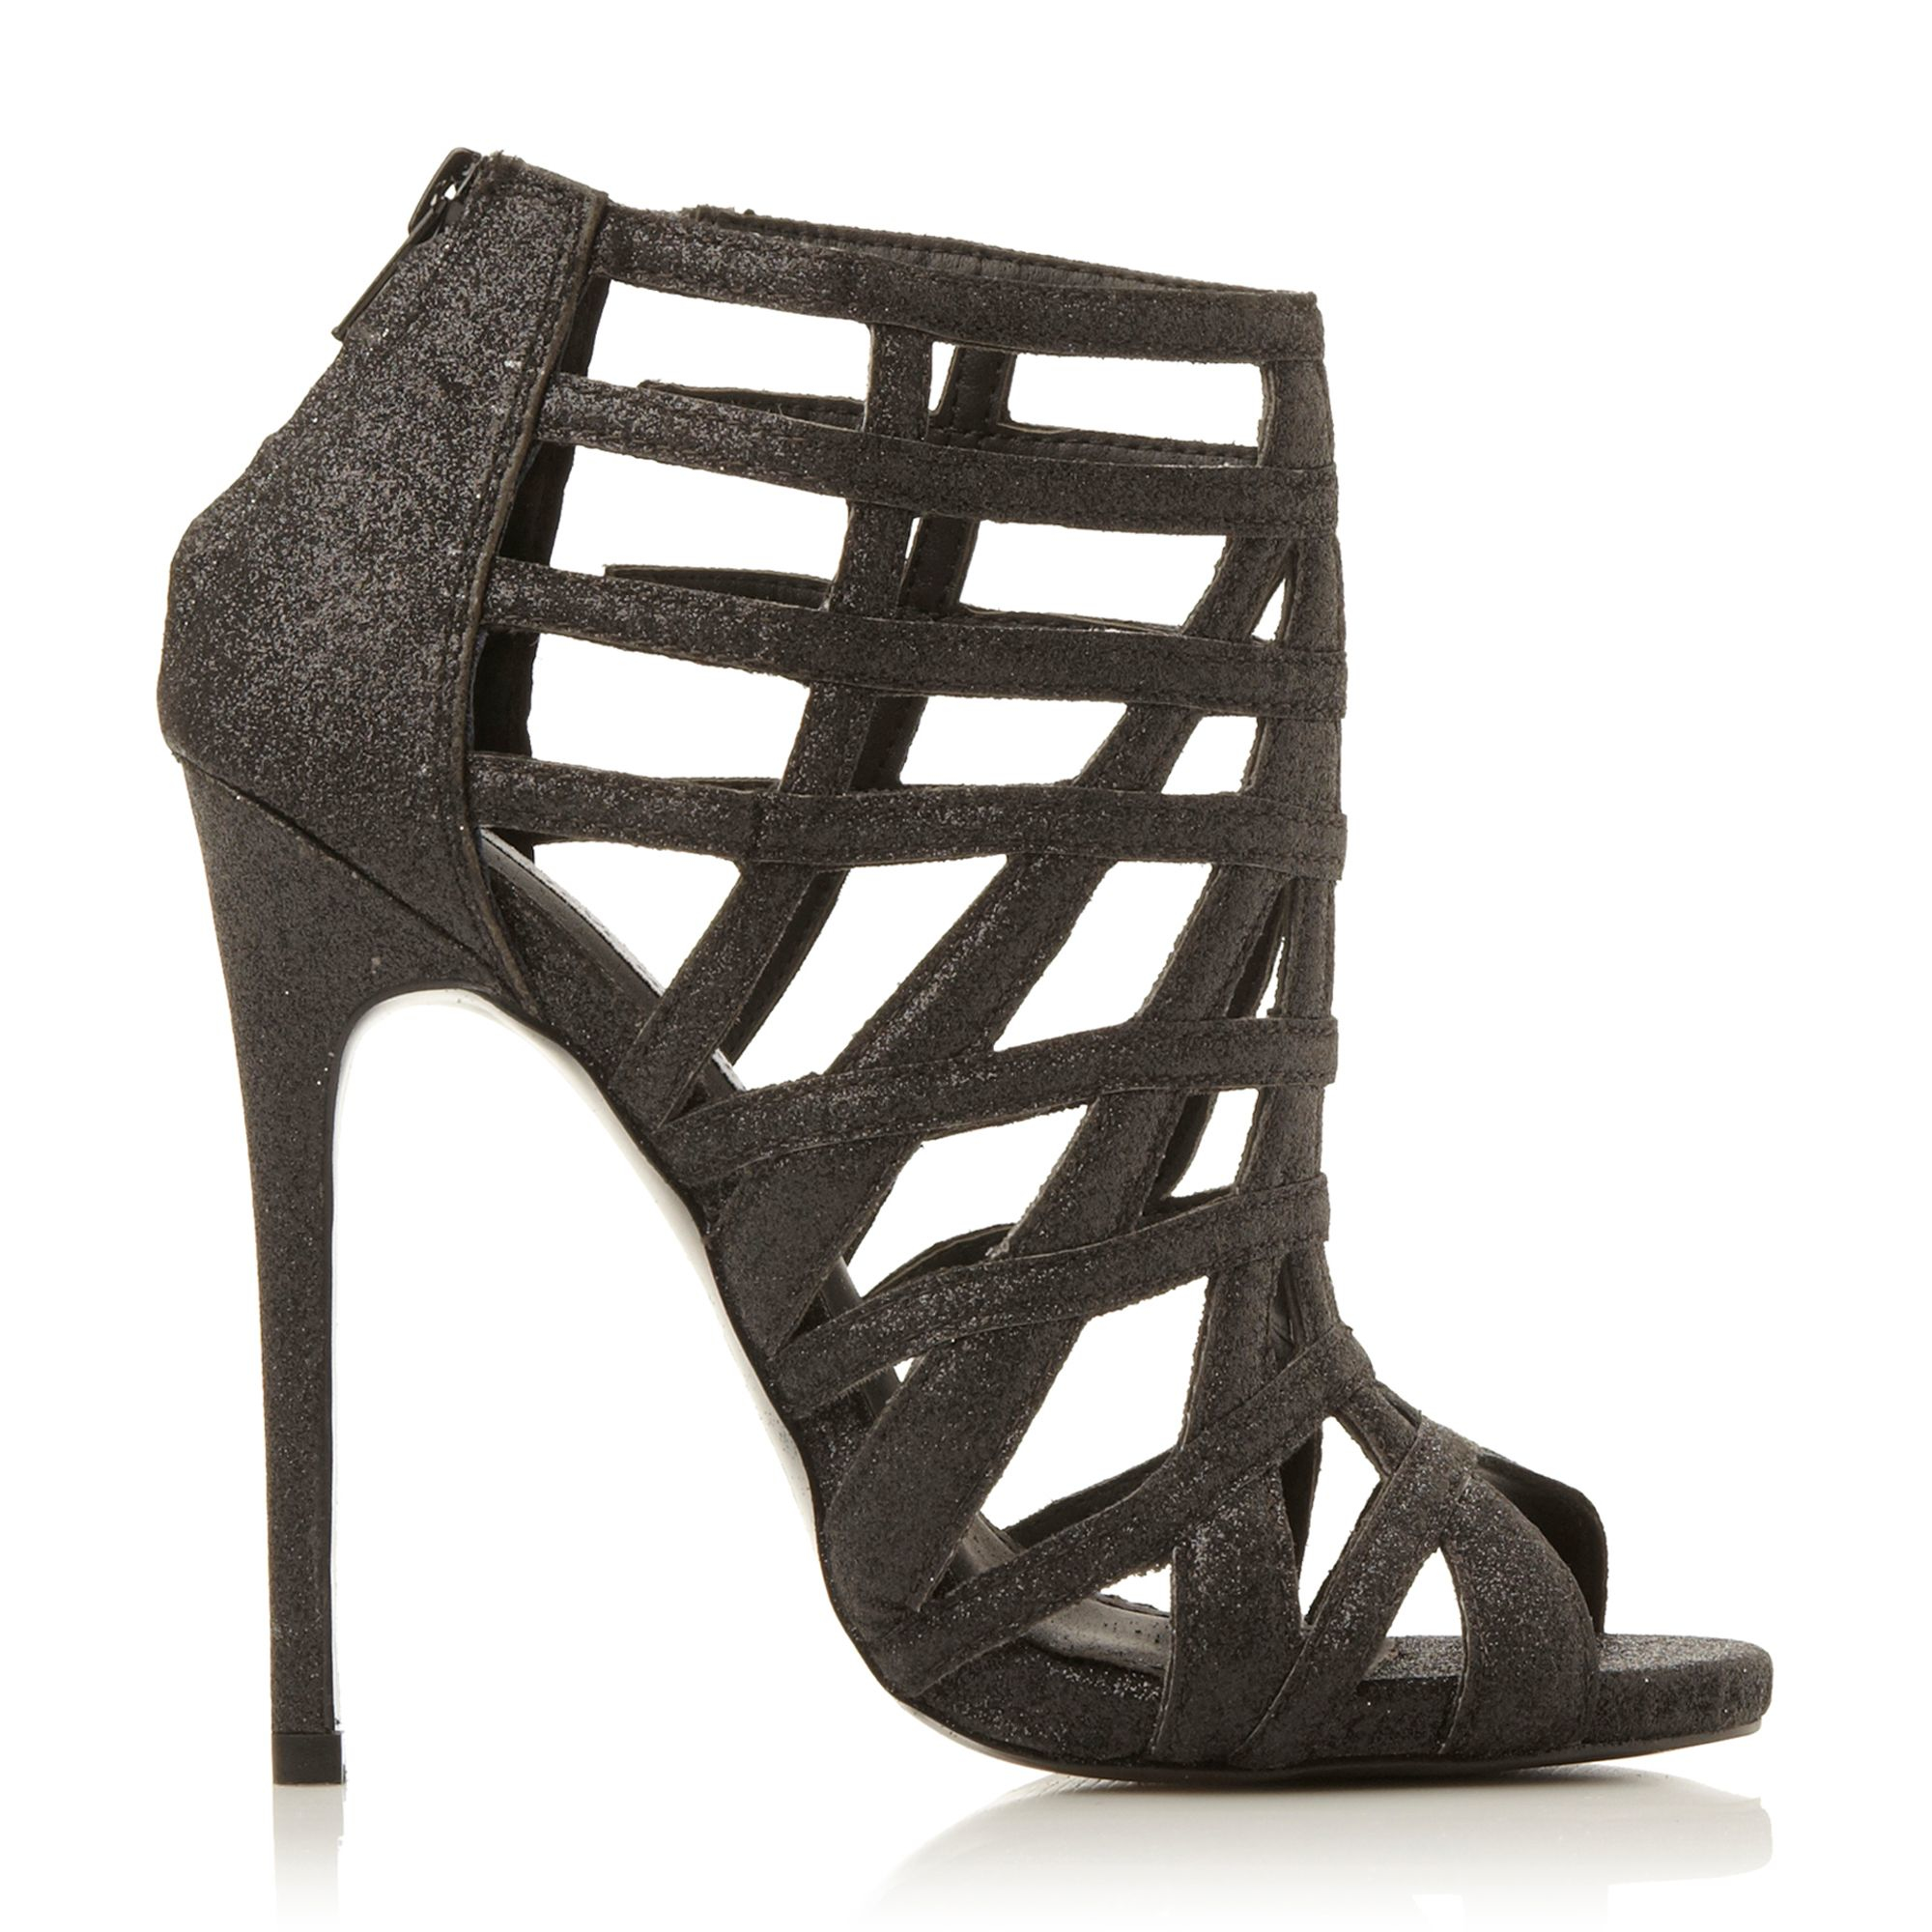 steve madden marquee caged heel sandals in black lyst. Black Bedroom Furniture Sets. Home Design Ideas